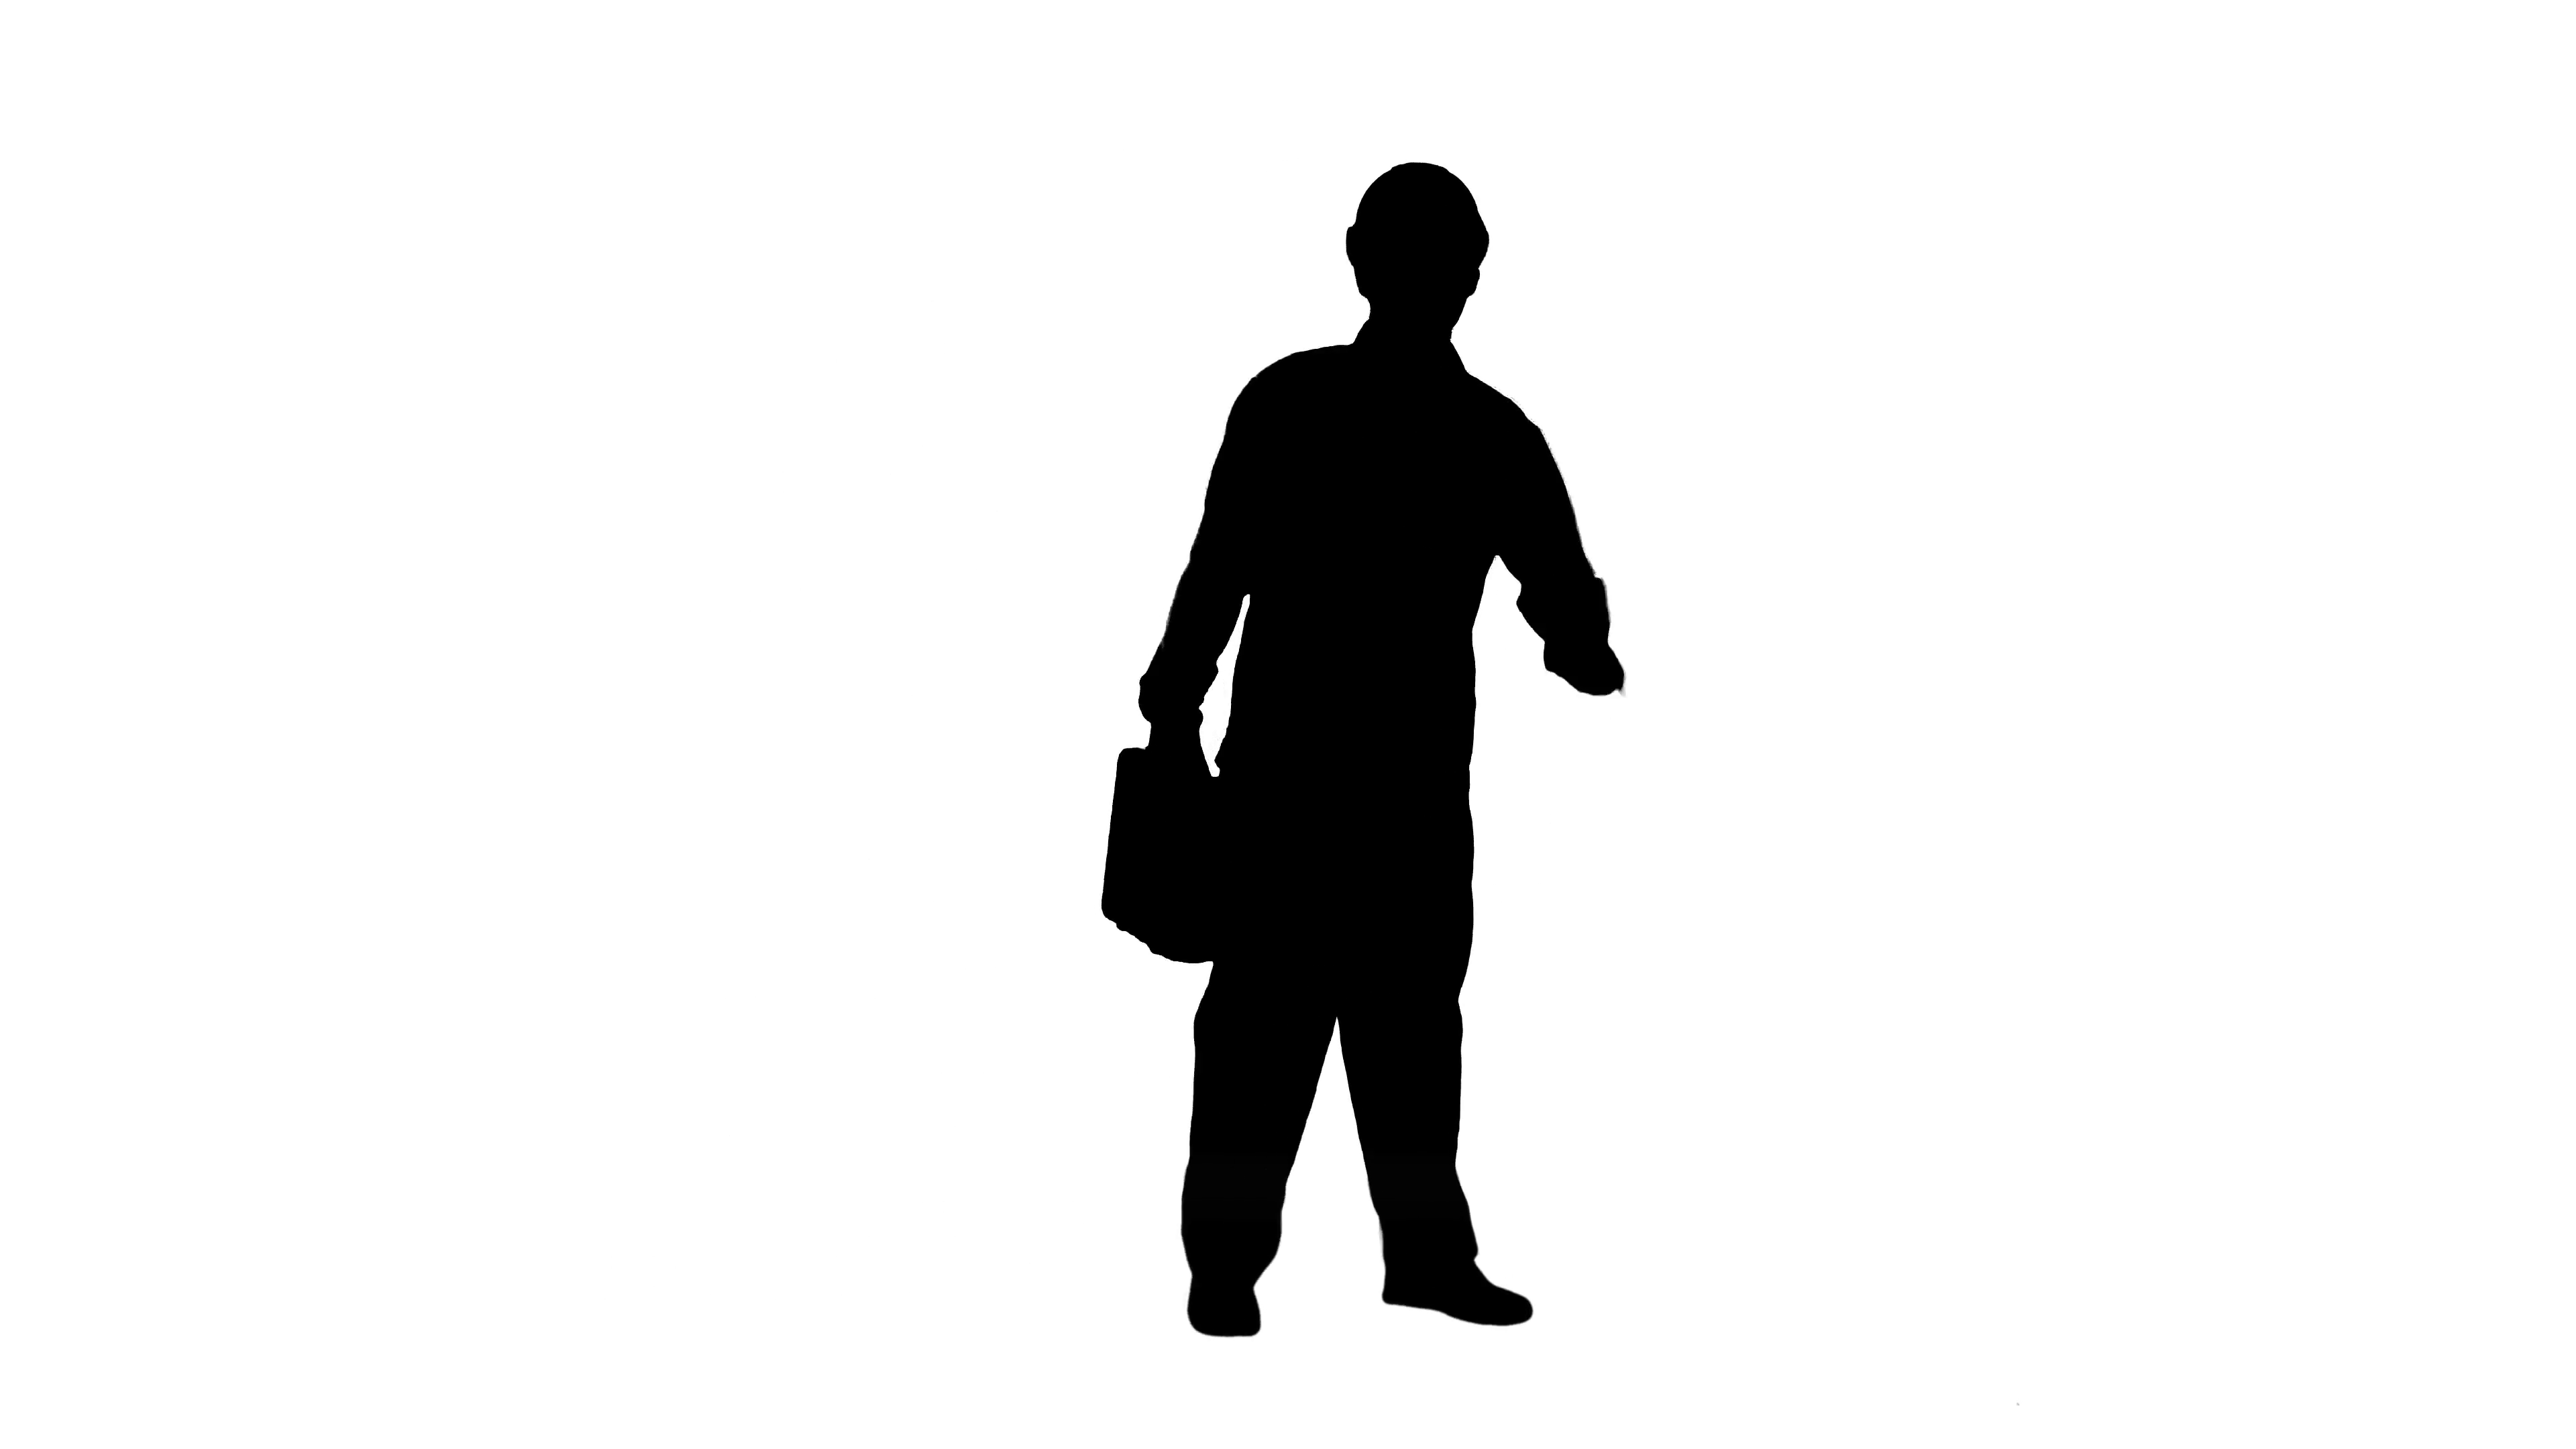 3840x2160 Silhouette Construction Engineer With Tablet And Drawing In Hands